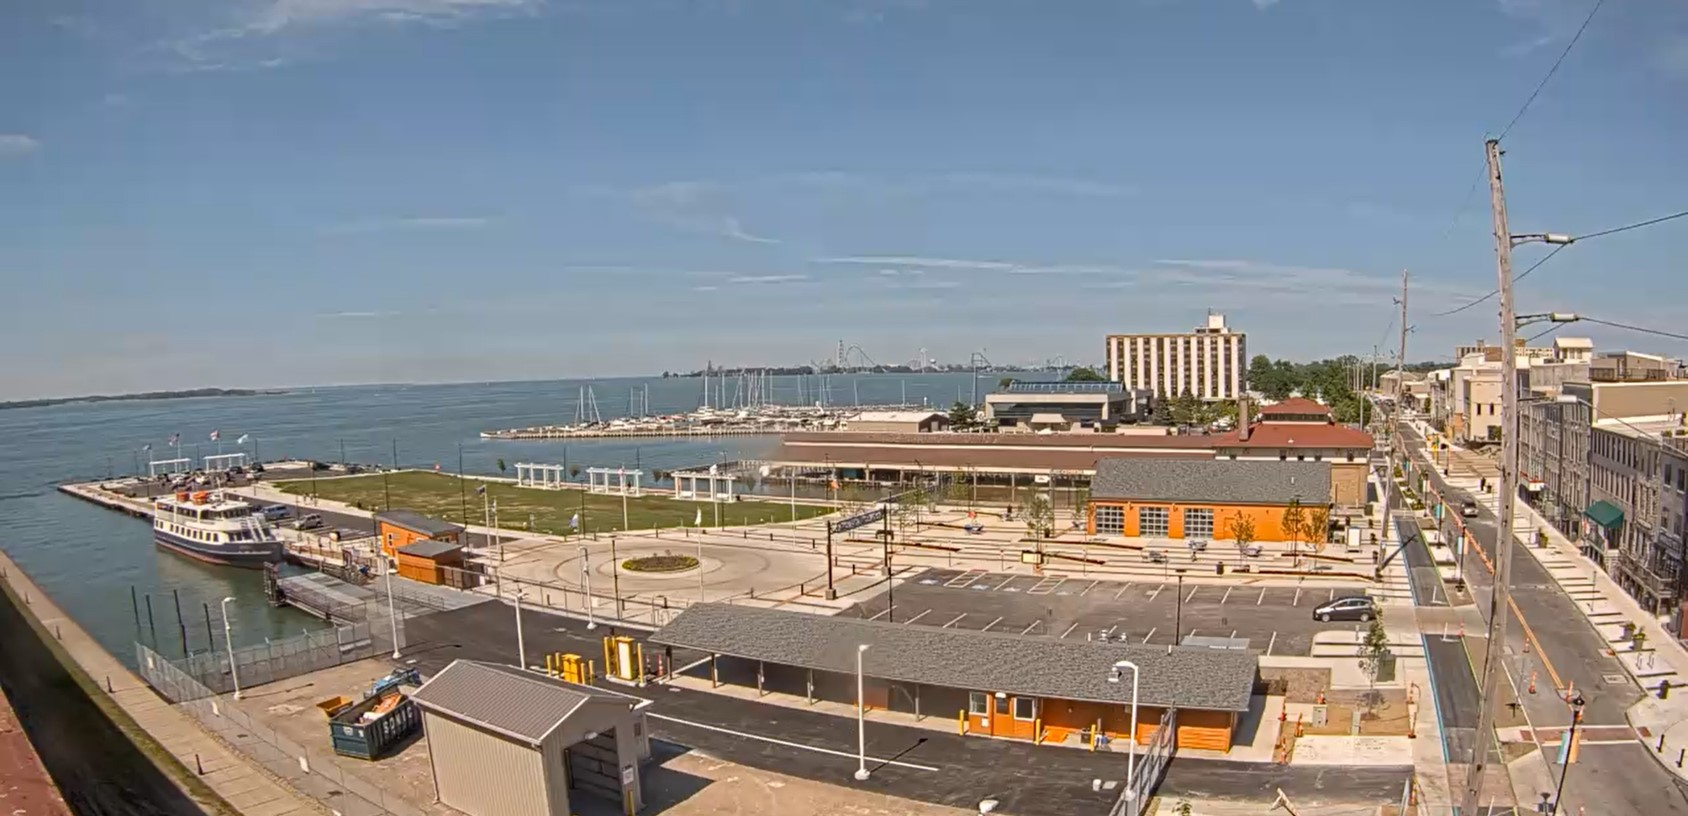 Jackson St Pier 062920 webcam